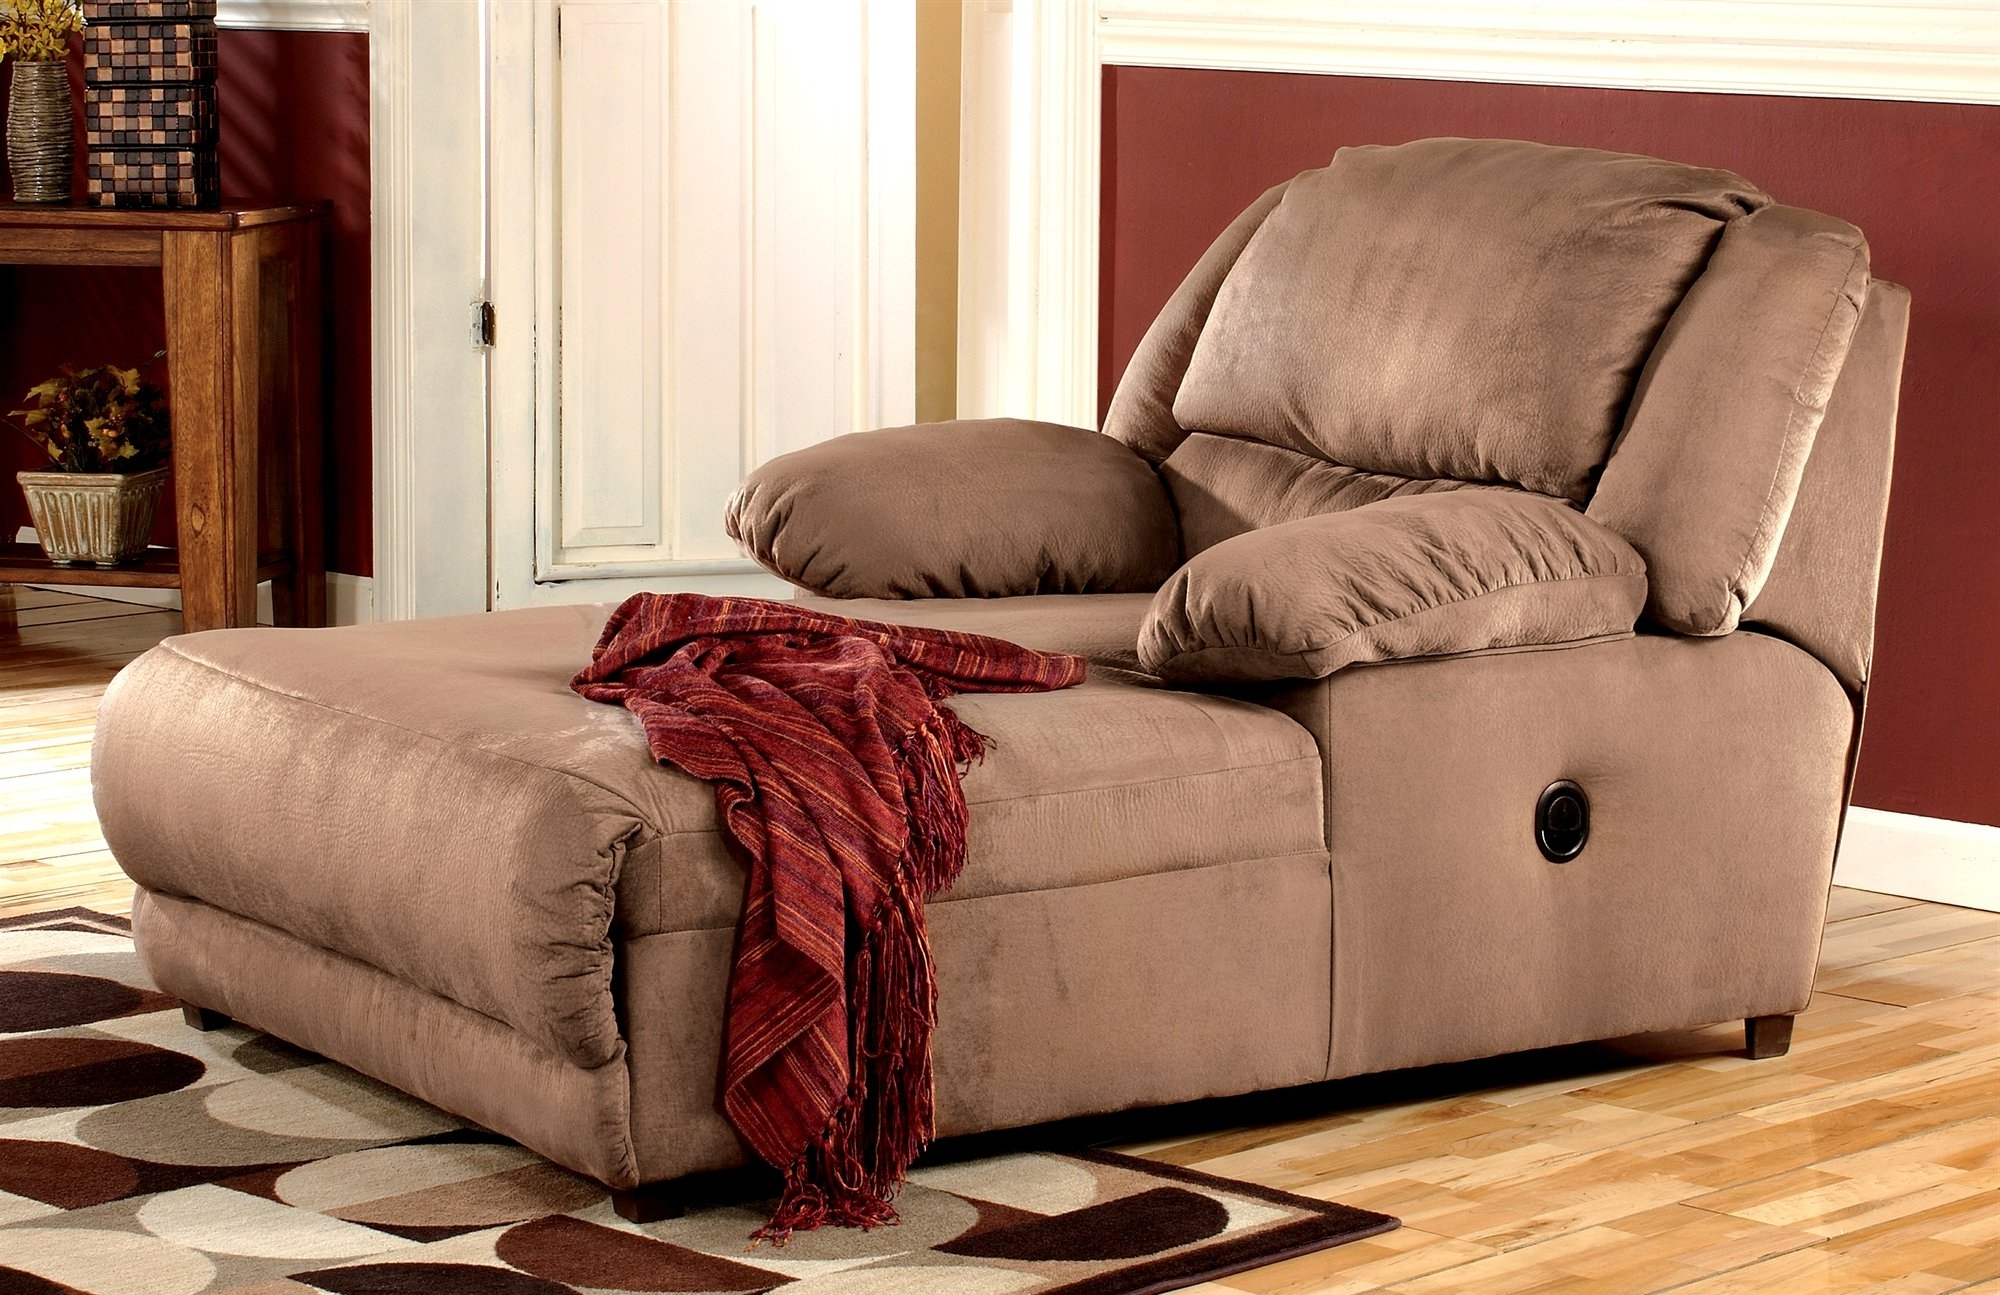 Lounge Chair : Small Bedroom Chaise Lounge Chairs Small Chaise With Regard To Best And Newest Double Chaise Lounges For Living Room (View 9 of 15)